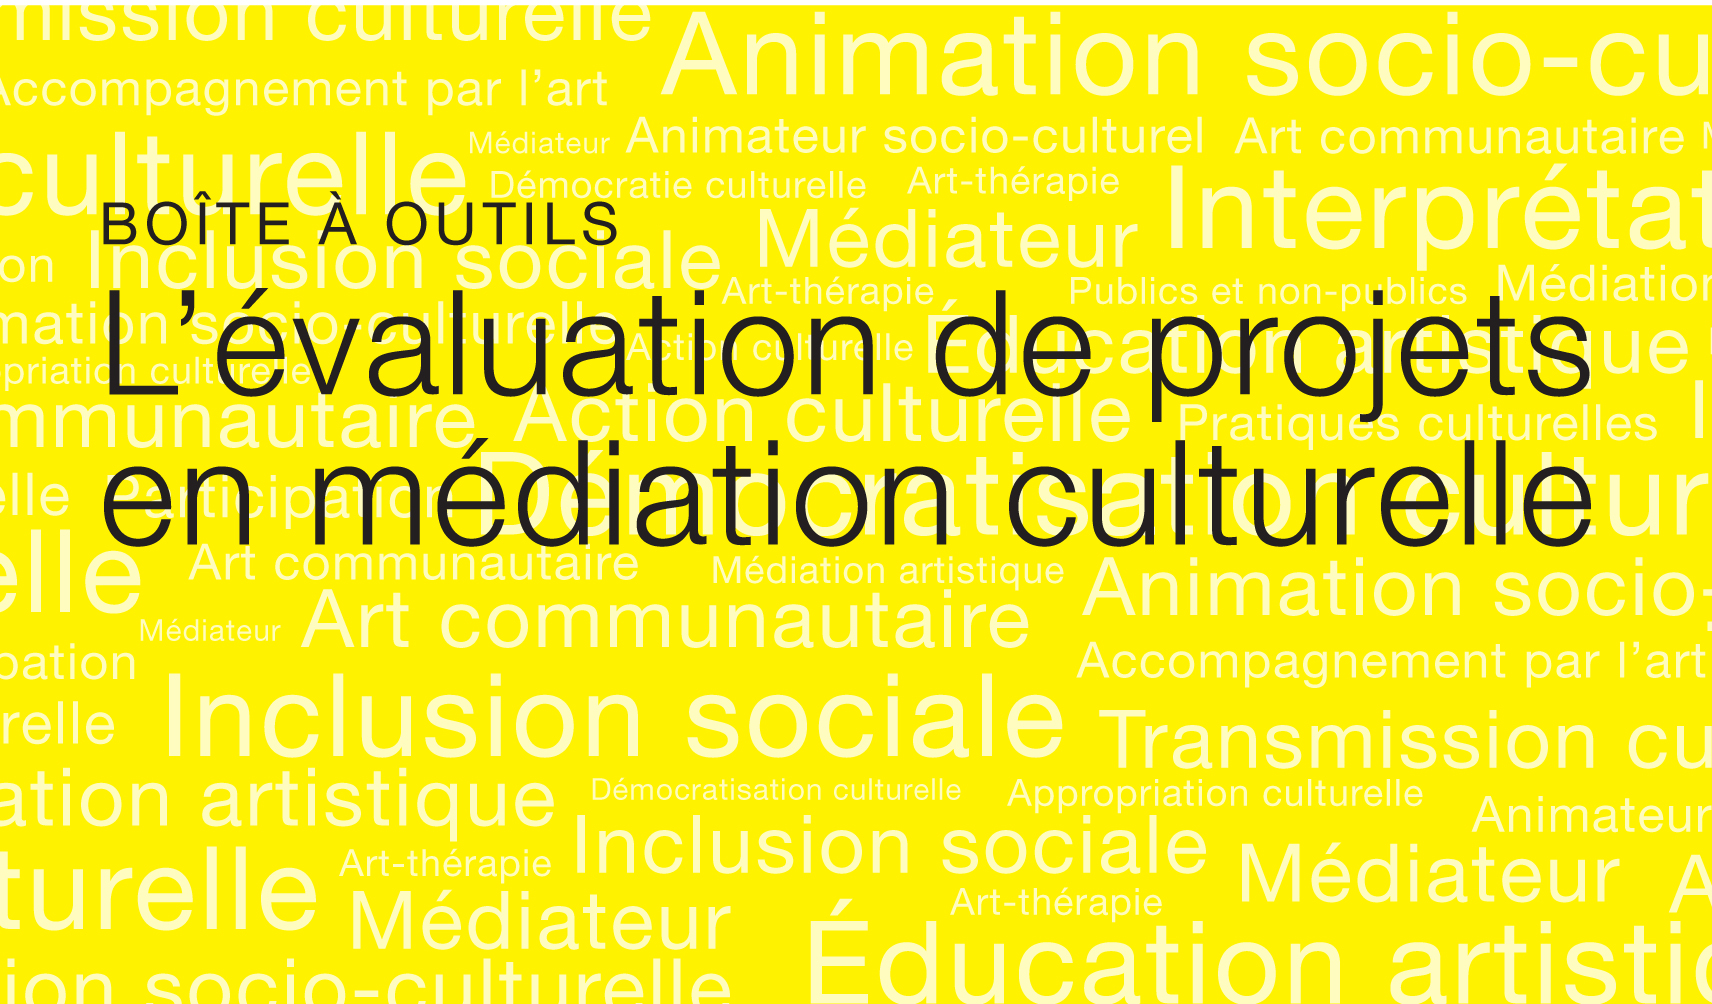 Boite_Outils_Evaluation_projets_CPT_mai2015-1